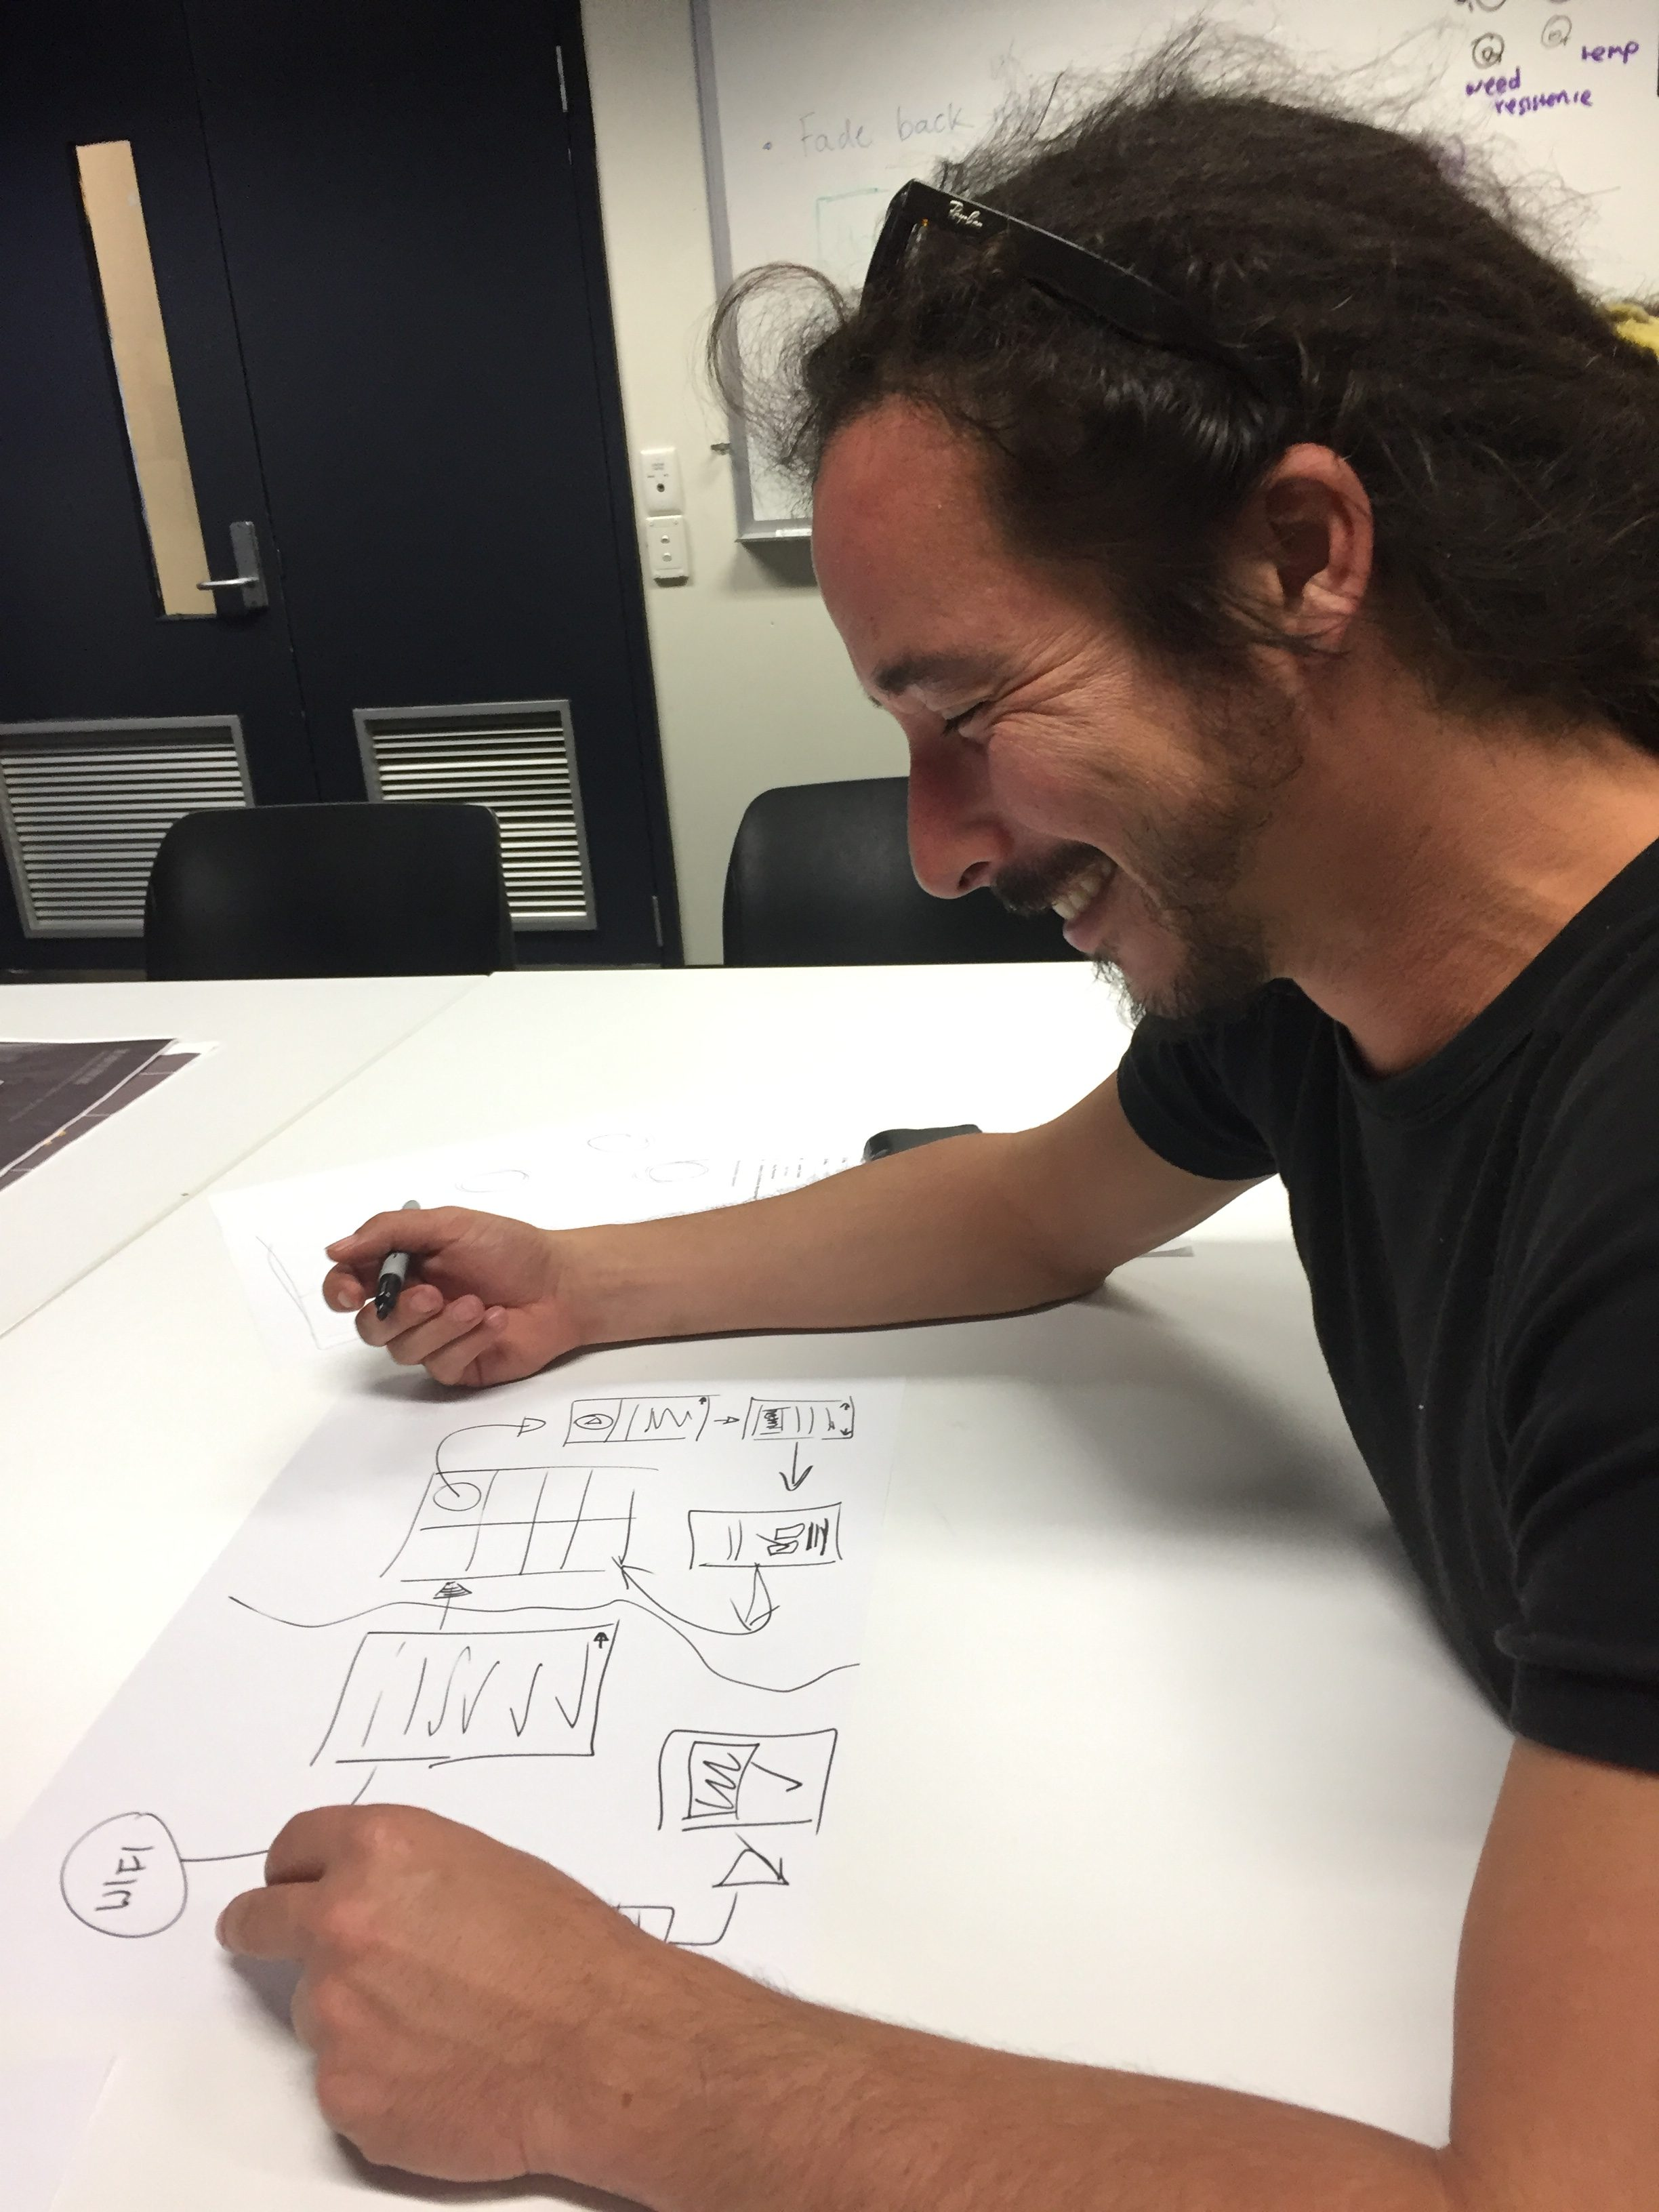 Bryce working on wireframes for Marvel Mobile